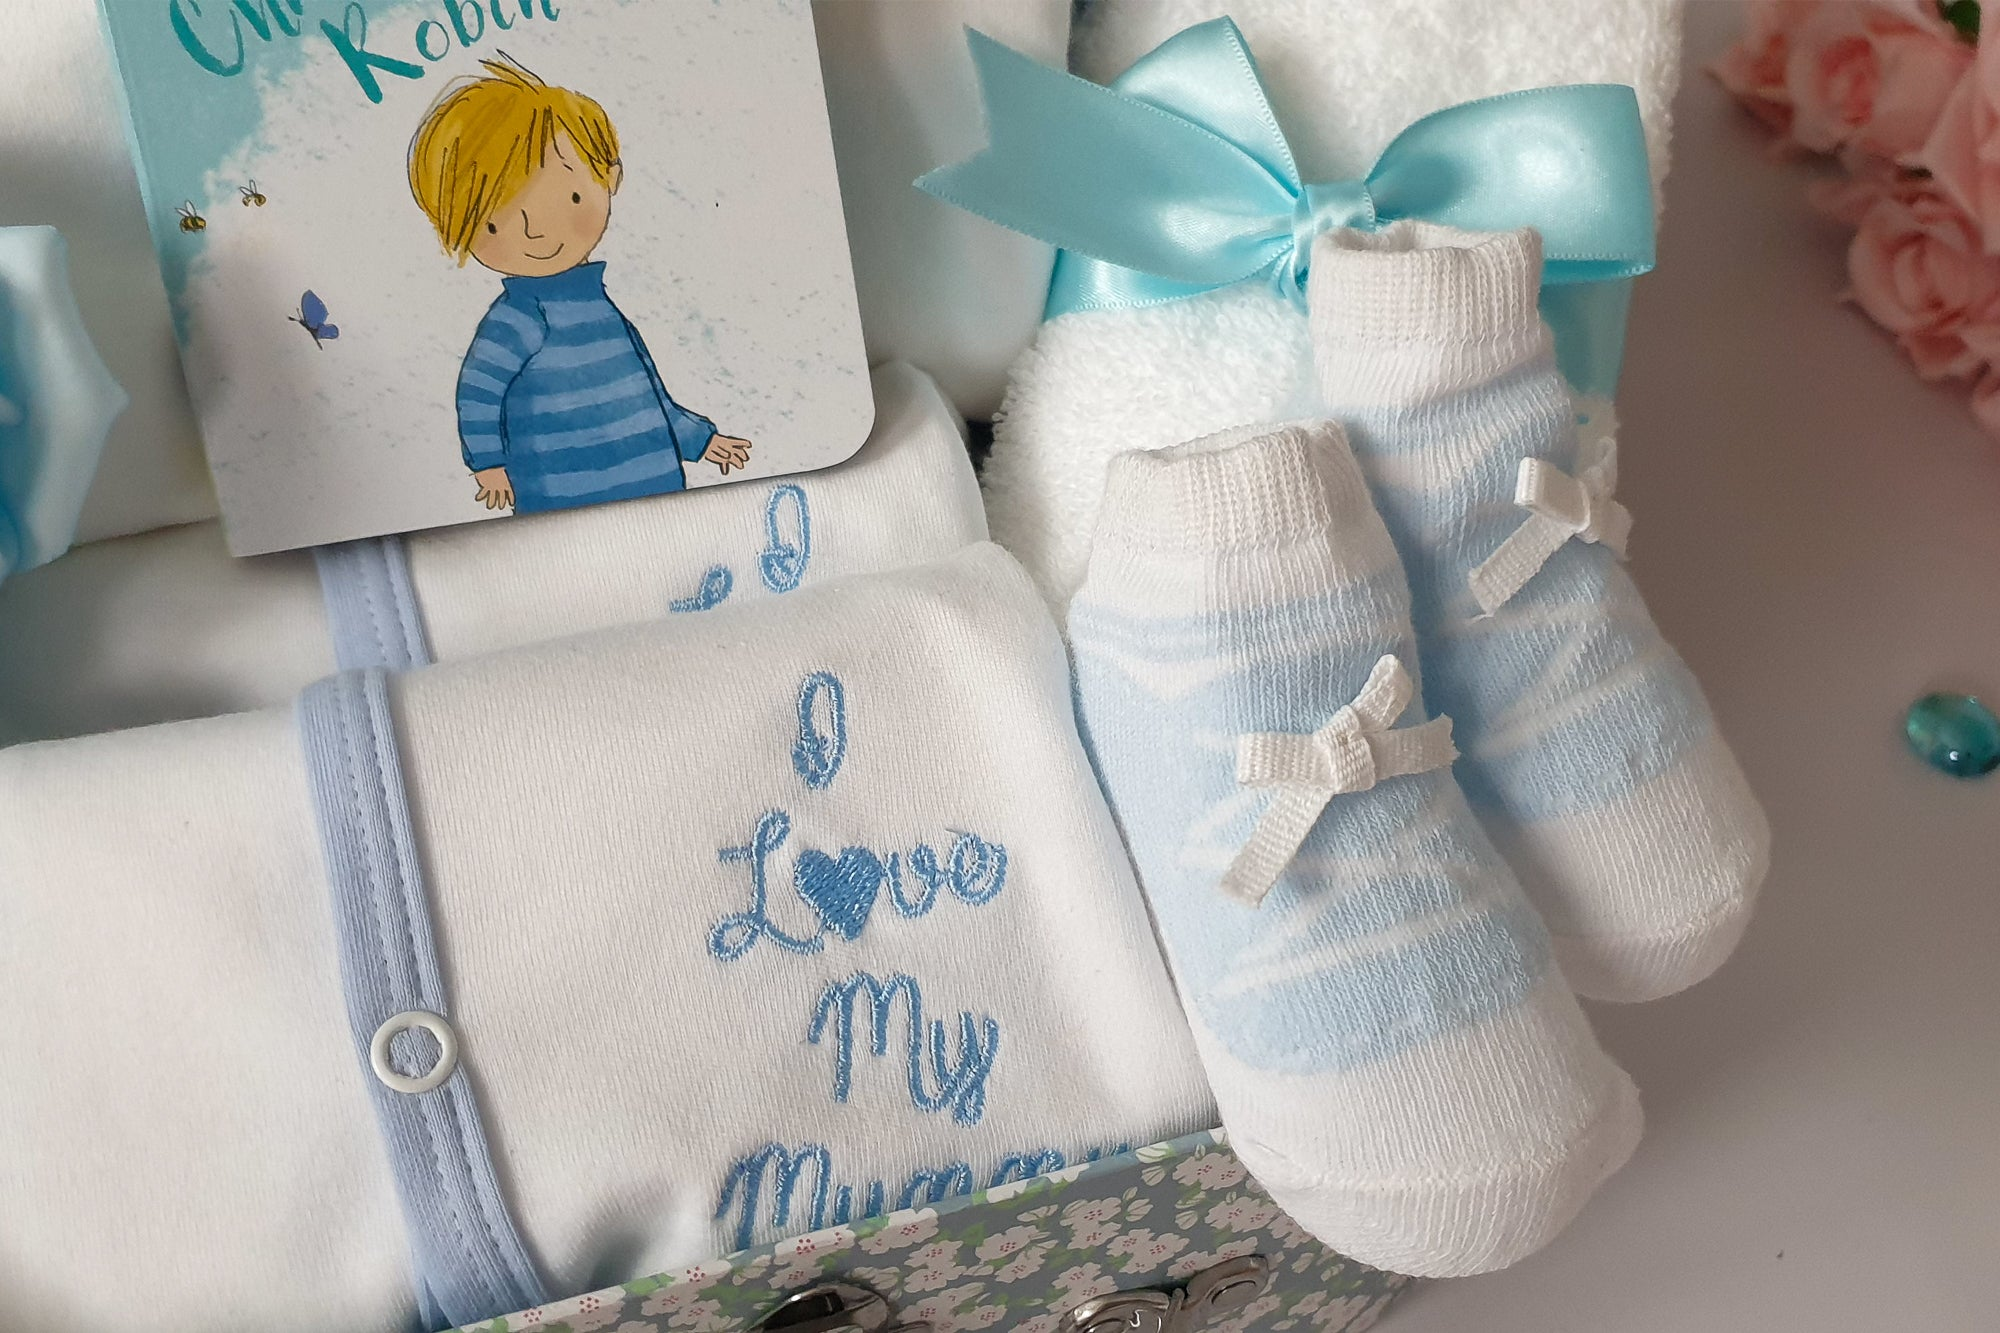 "CONGRATULATIONS ""I Love My Mummy & Daddy"" Baby Hamper, Sleepsuit, Bodysuit, Comforter, Baby Boy Gift Hamper, Keepsake Gift Box, New Mum Hamper"